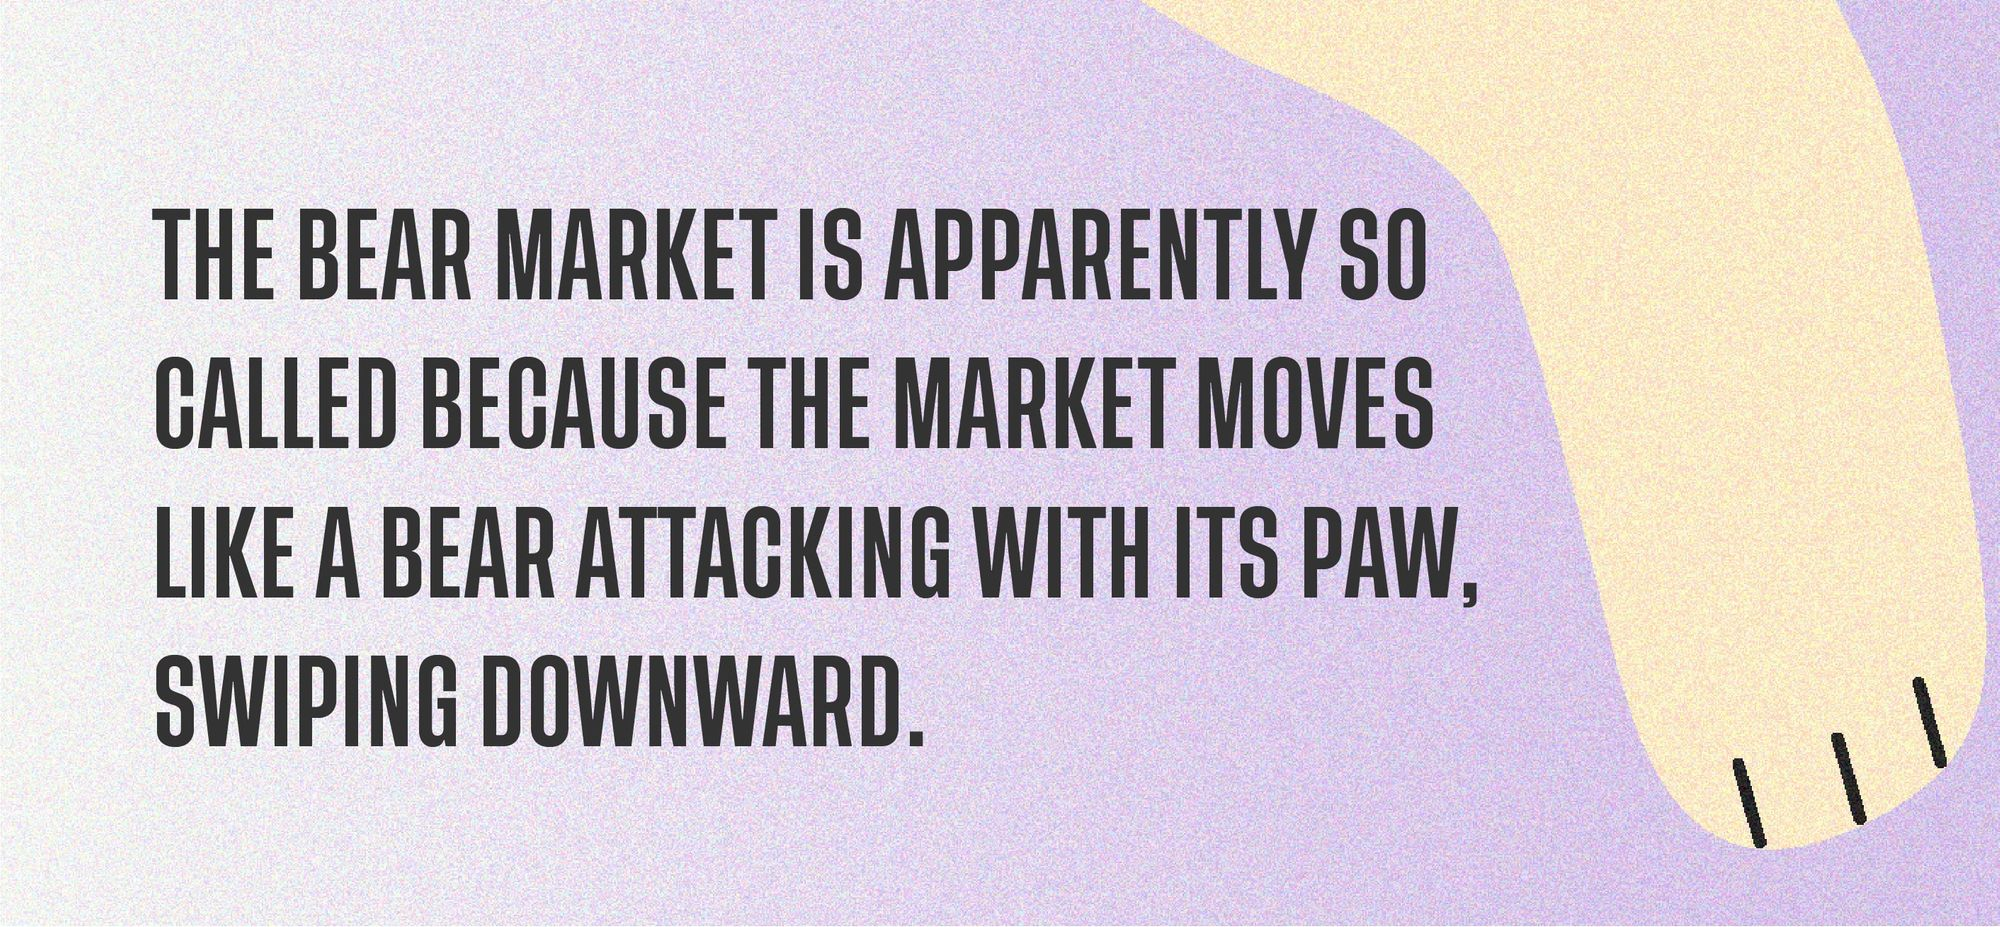 The bear market is apparently so called because the market moves like a bear attacking with its paw, swiping downward